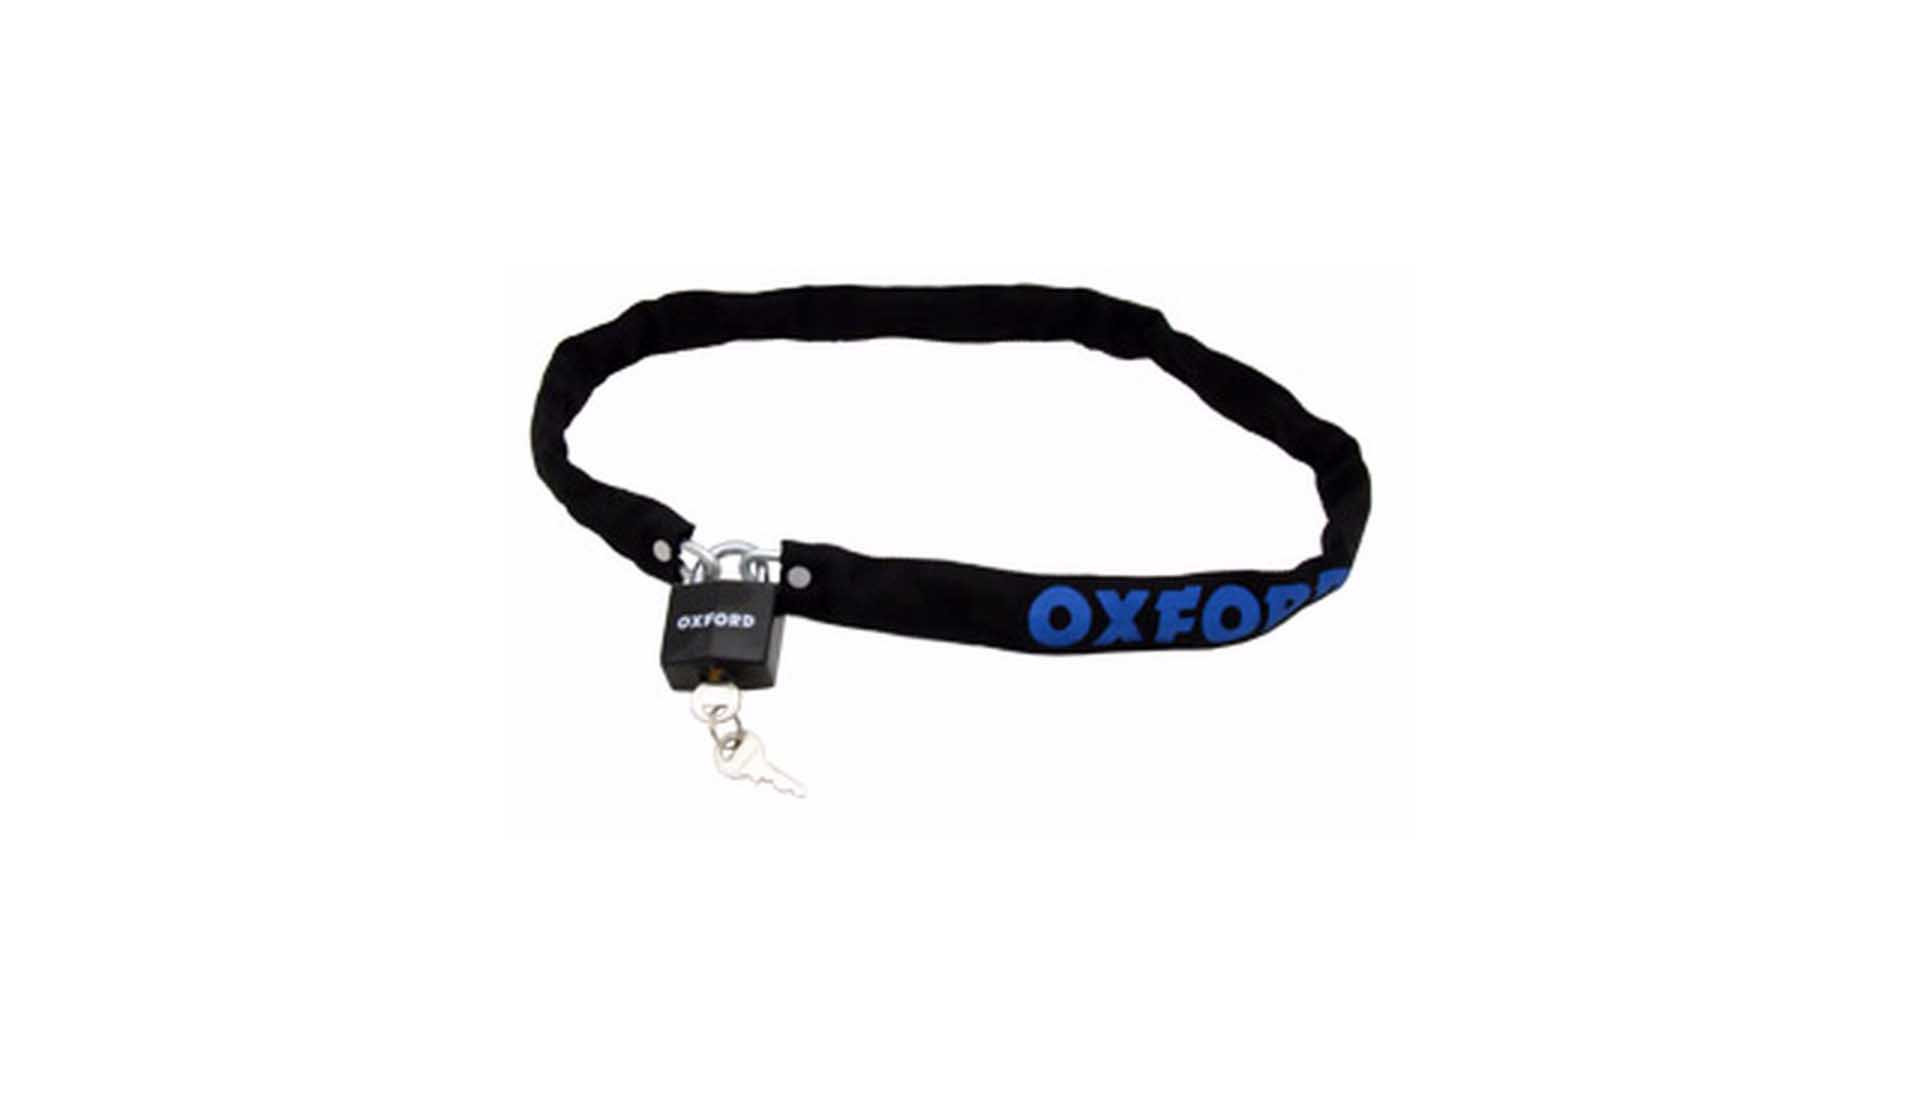 Oxford Chain Lock with Sleeve | Combo Lock